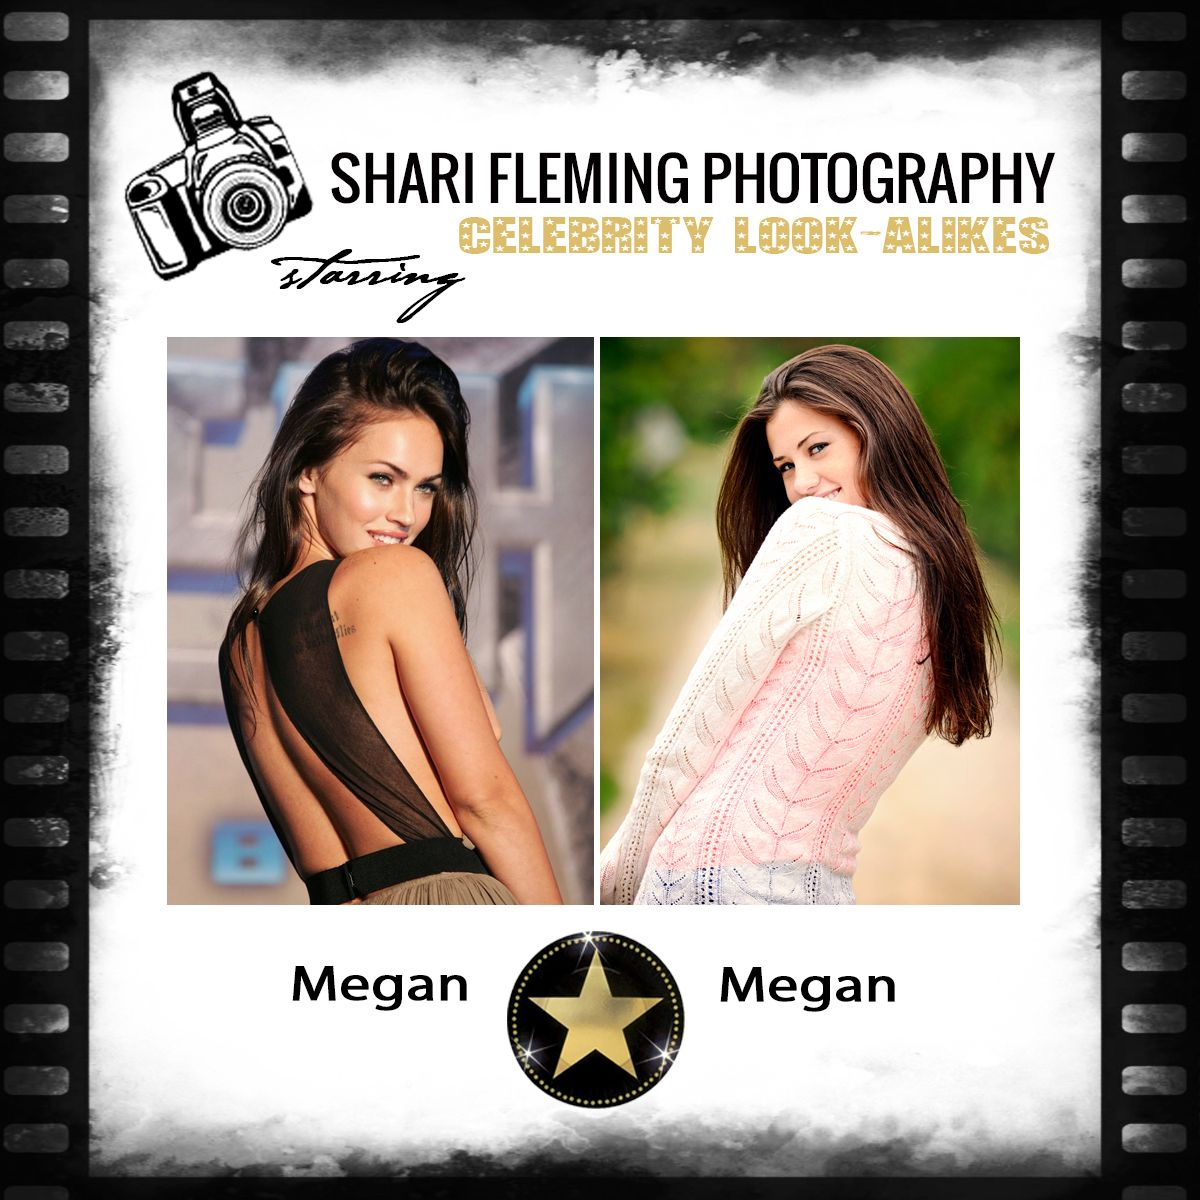 Megan (right) photographed by Shari Fleming